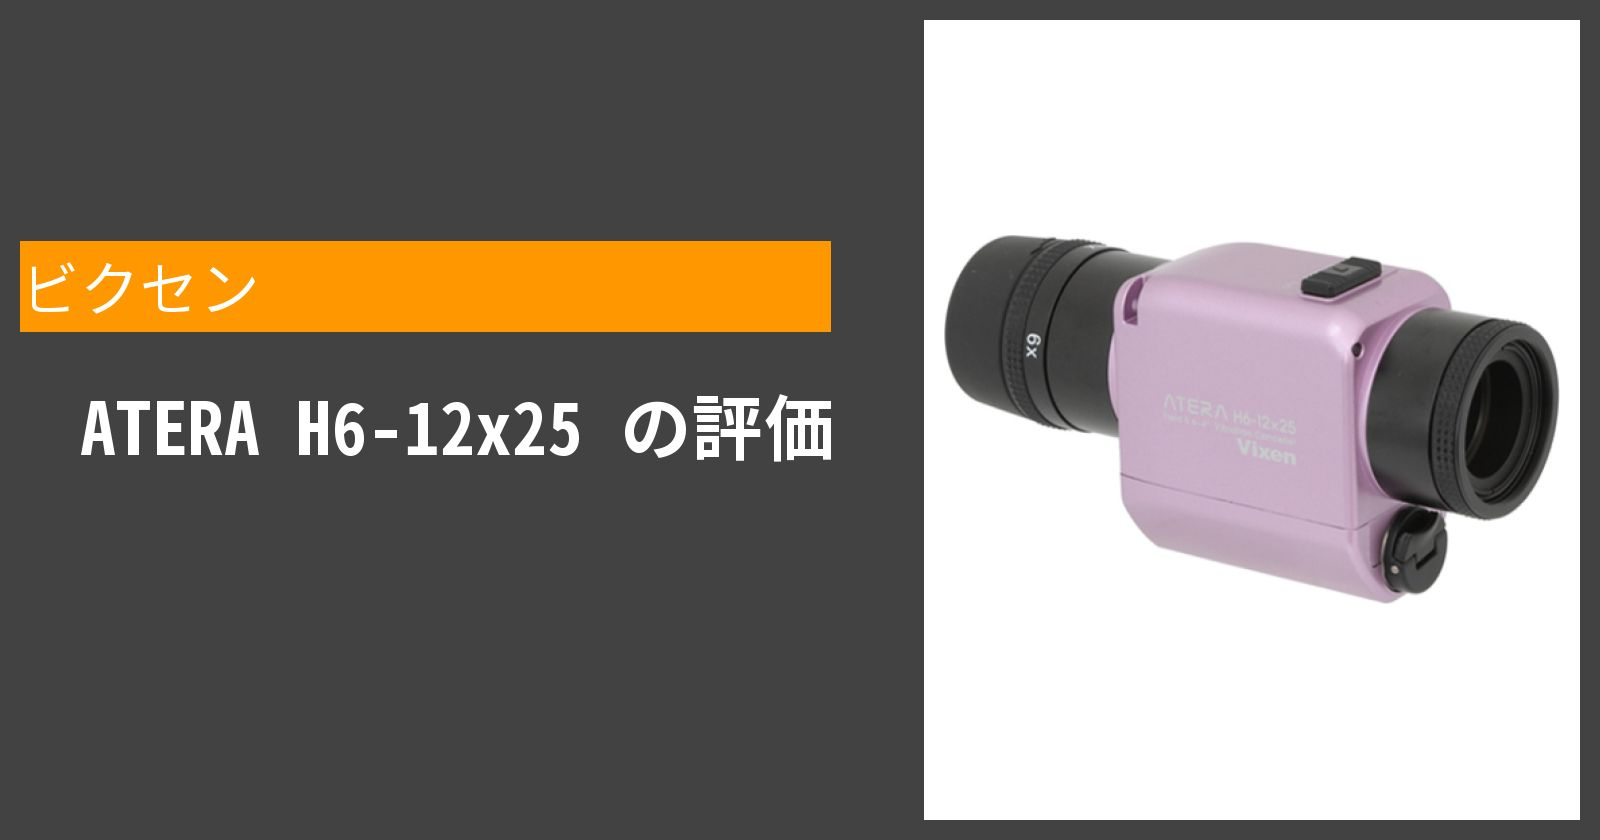 ATERA H6-12x25を徹底評価